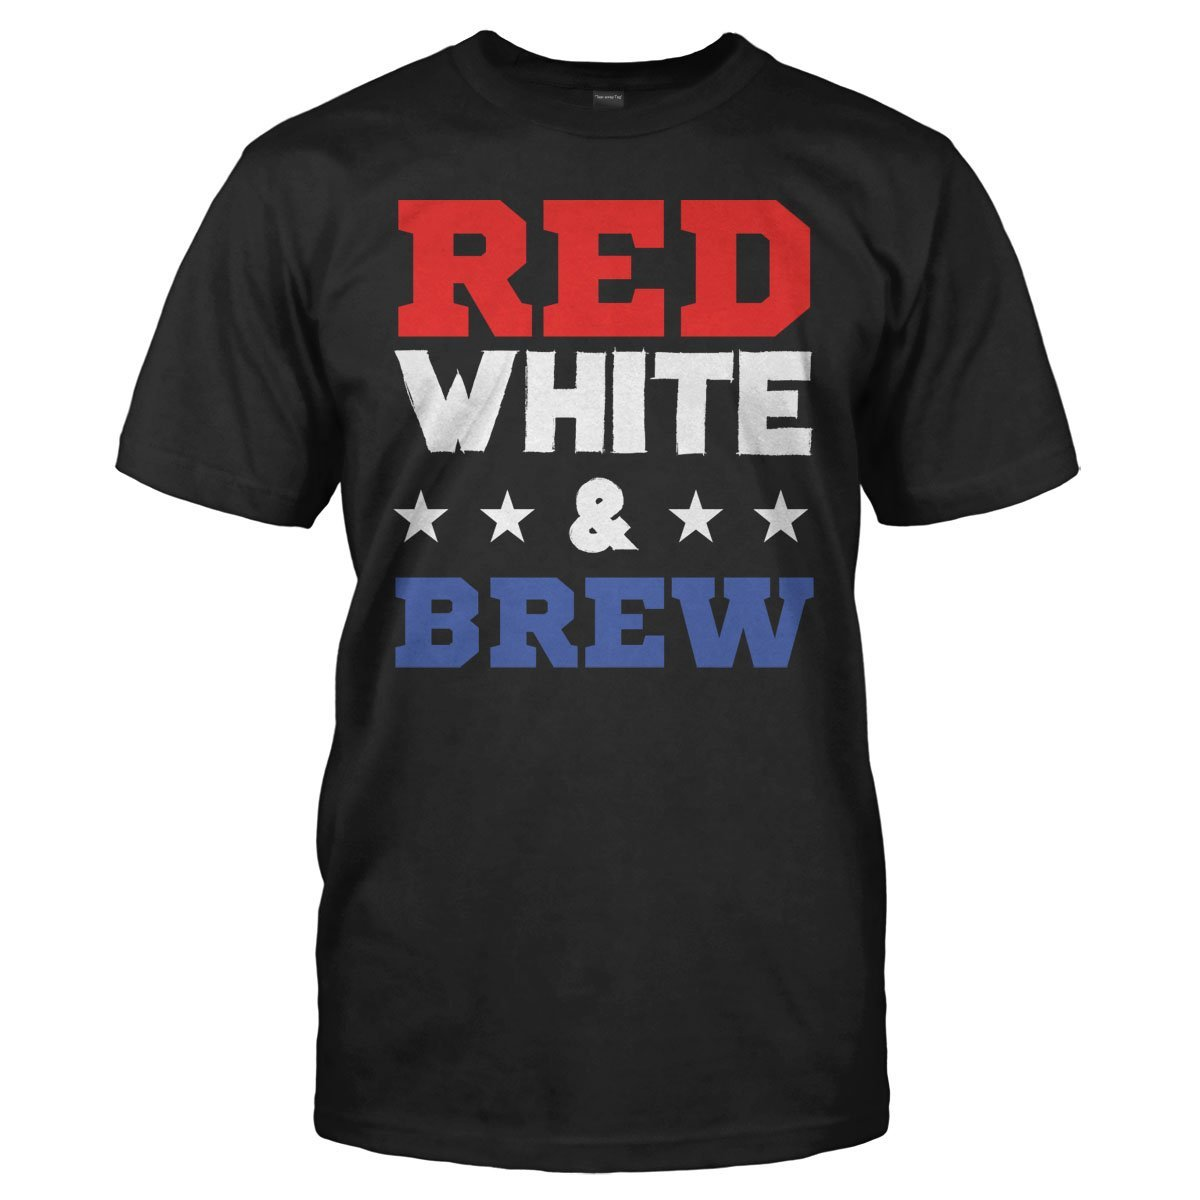 Red, White, and Brew - T Shirt